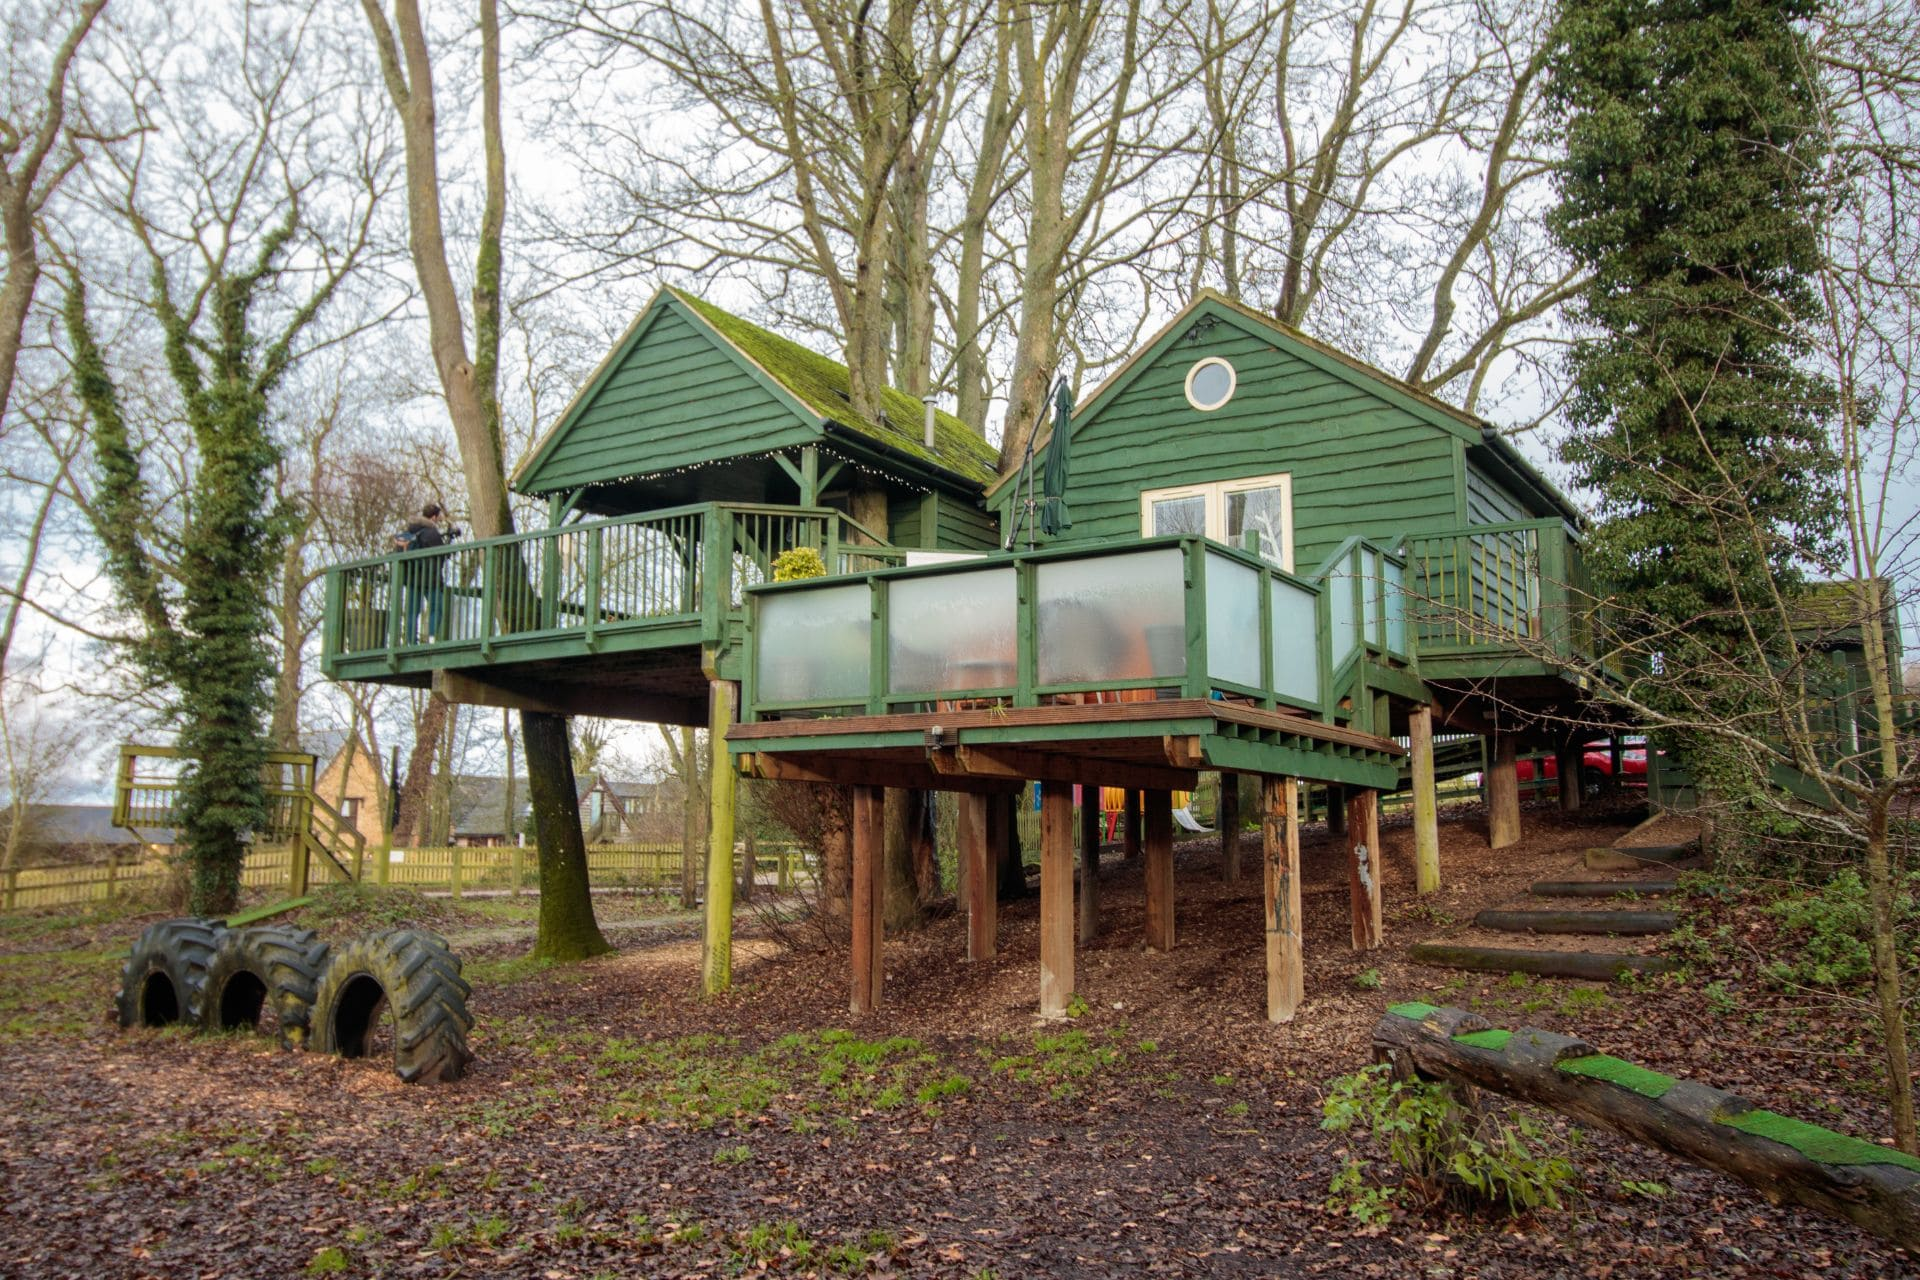 wills-tree-house-treehouse-breaks-uk-green-treehouse-in-england-on-stilts-in-woodland